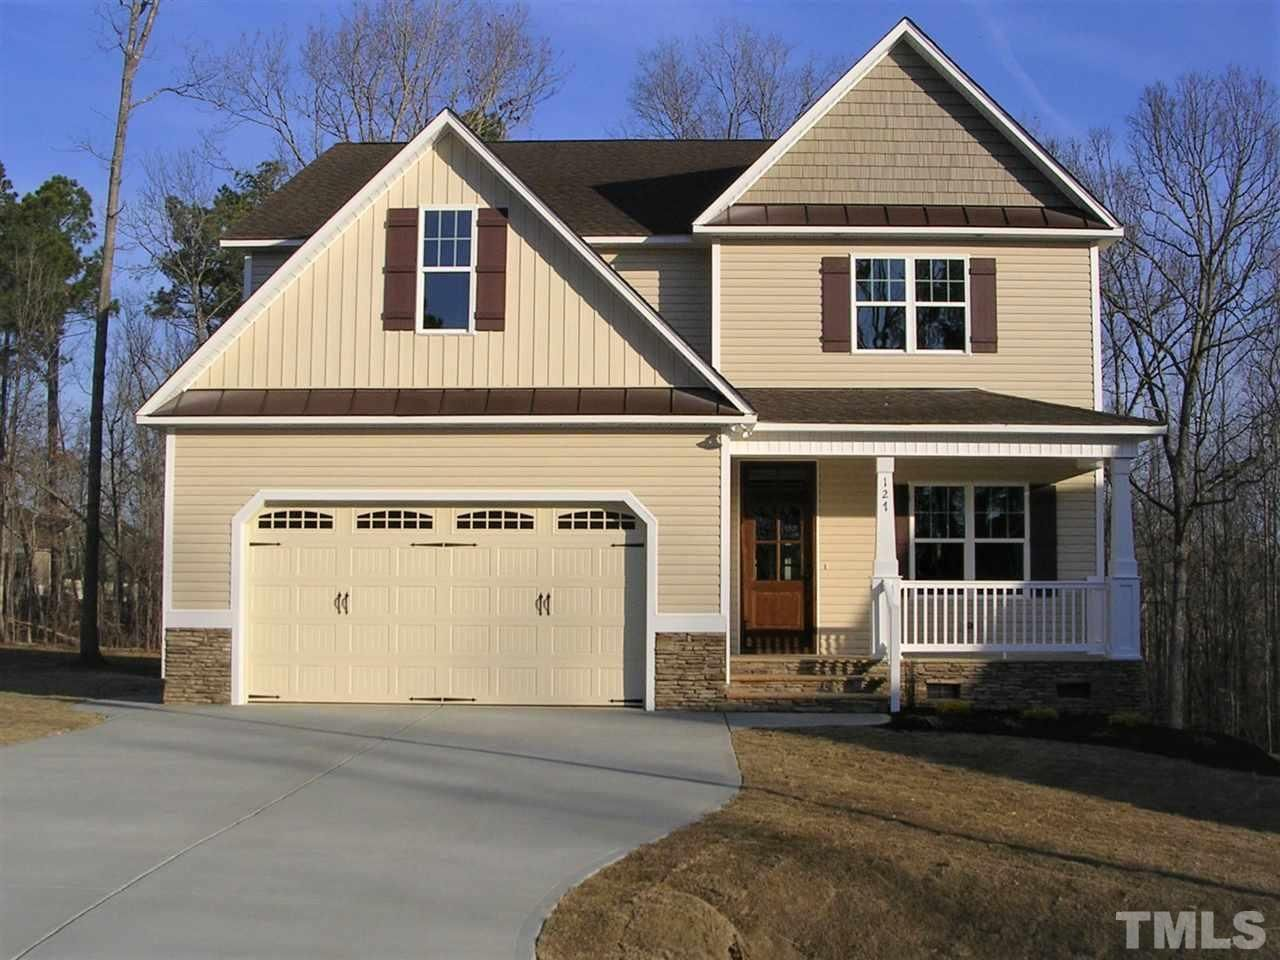 127 Evie Dr 81 For Sale Smithfield Nc Trulia